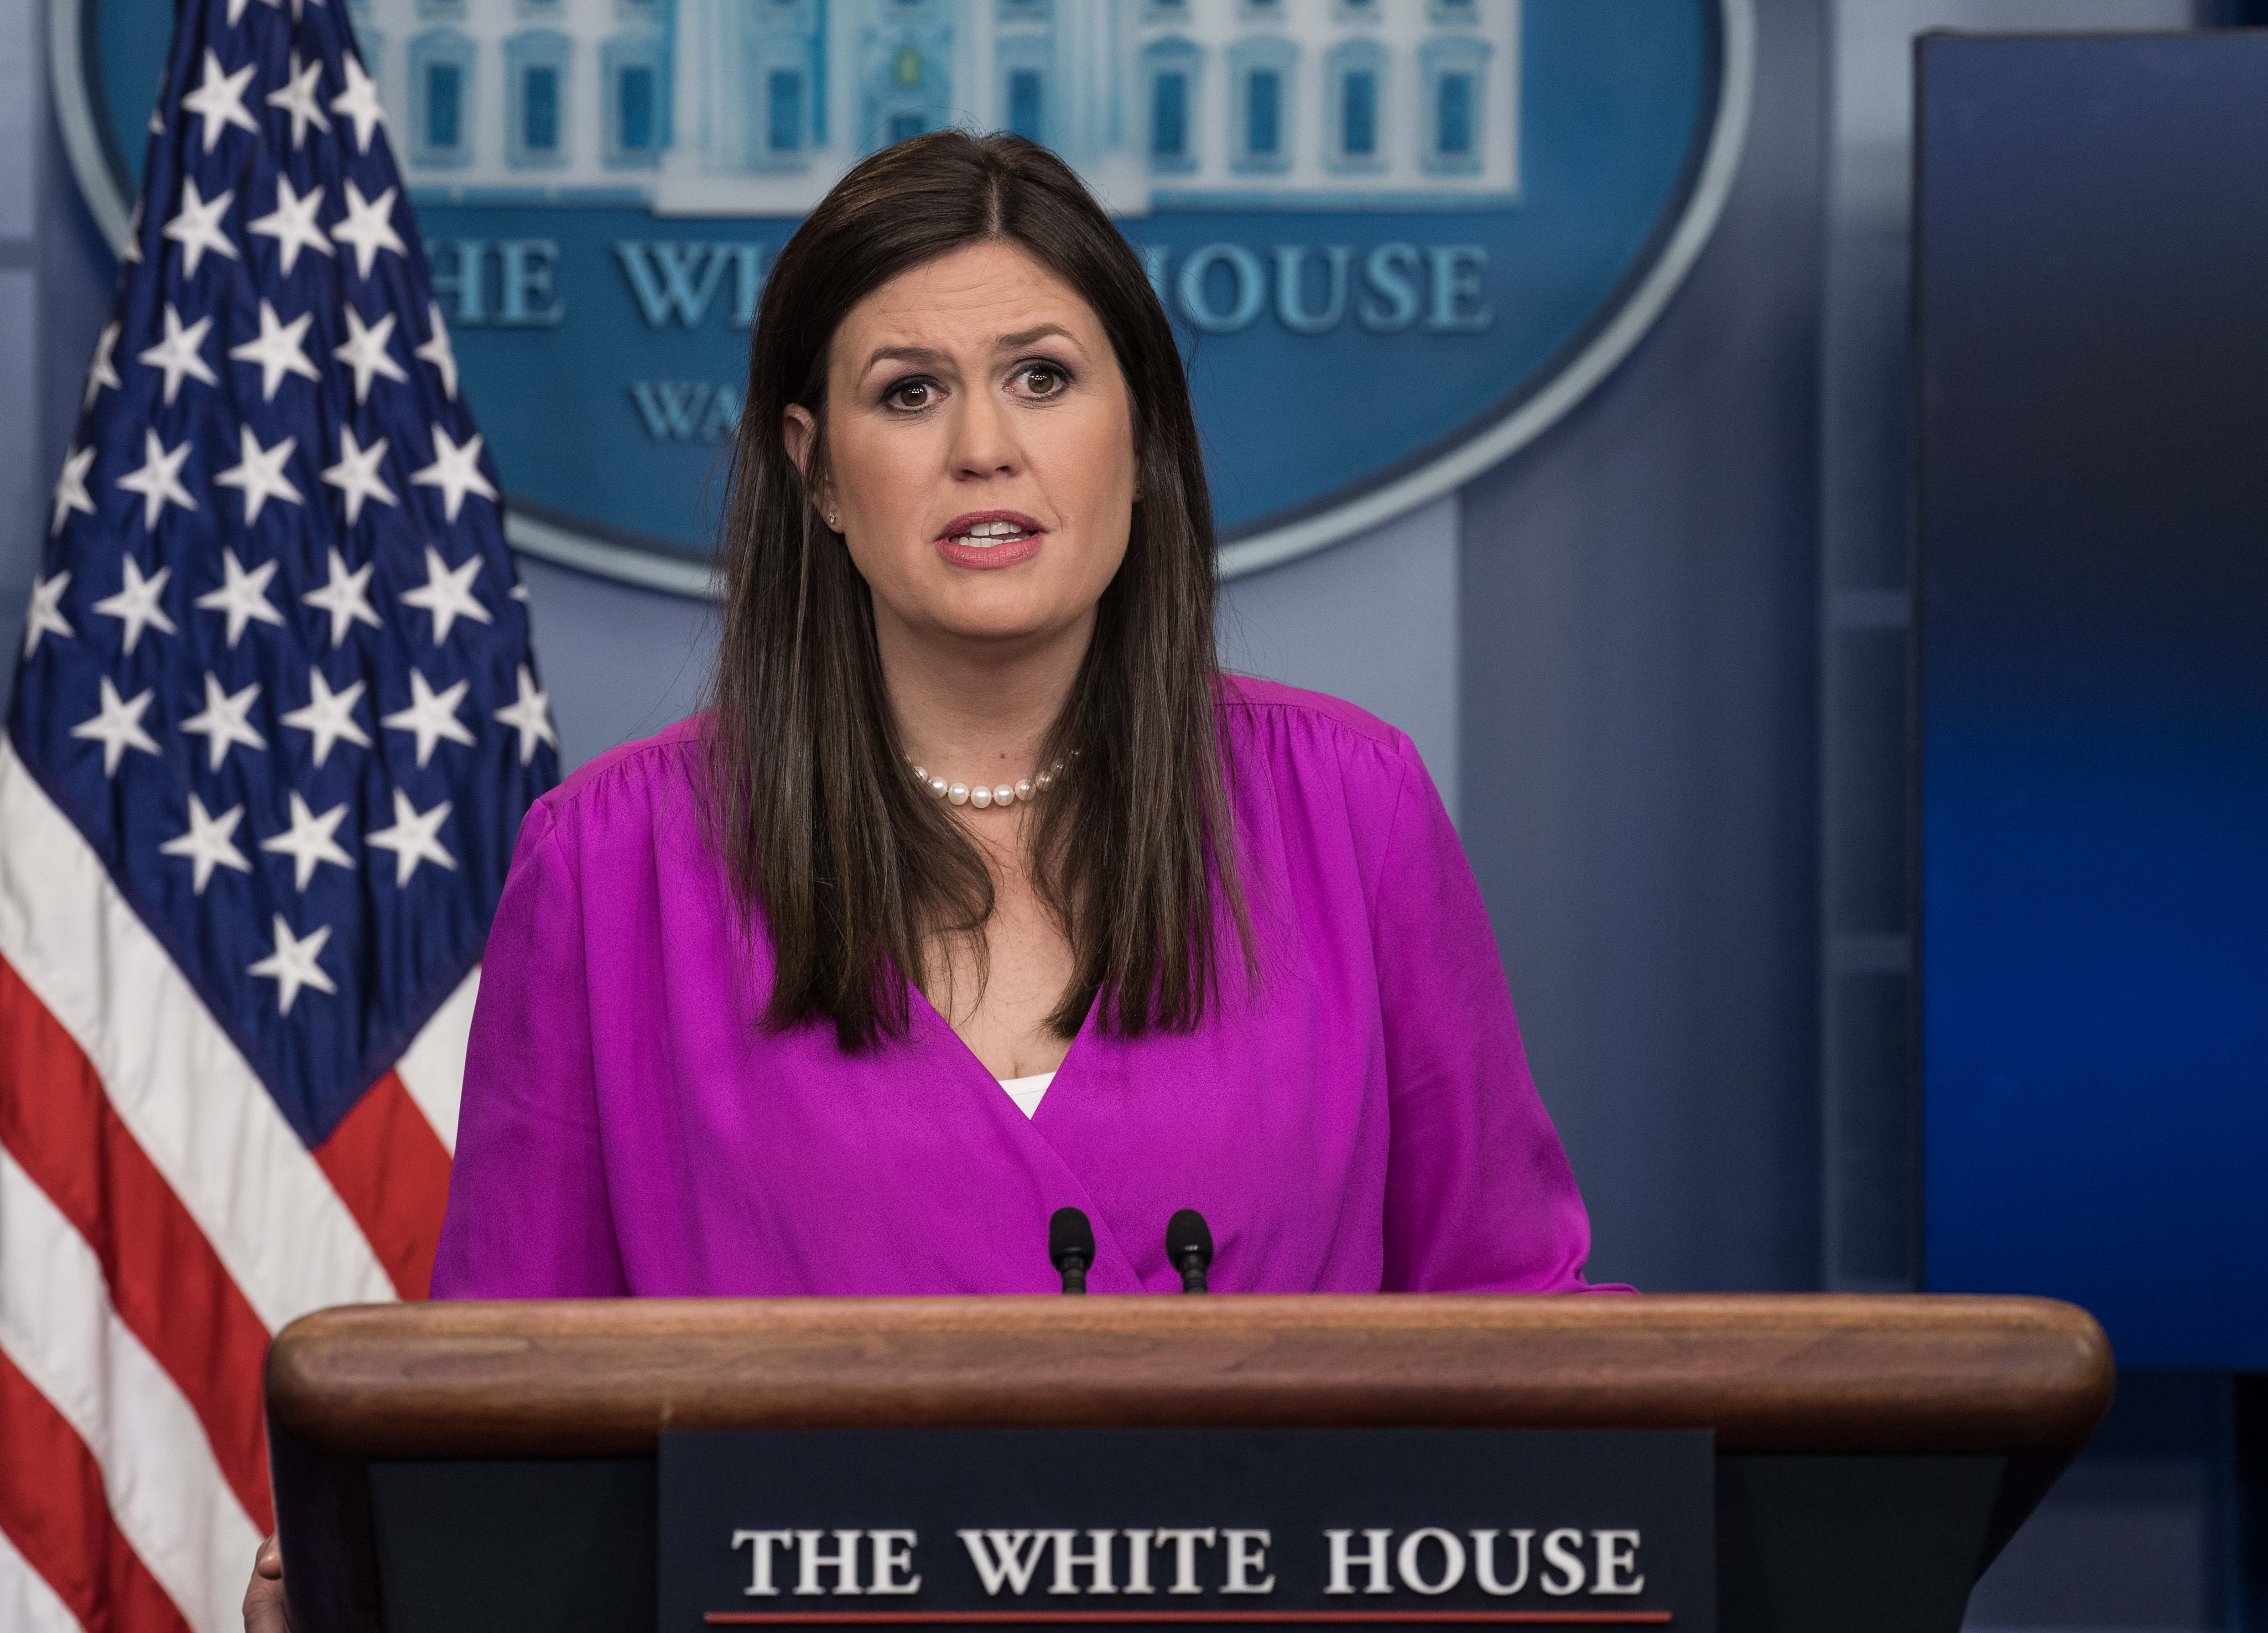 Principal Deputy White House Press Secretary Sarah Huckabee Sanders speaks at the press briefing at the White House in Washington, DC, on June 27, 2017.